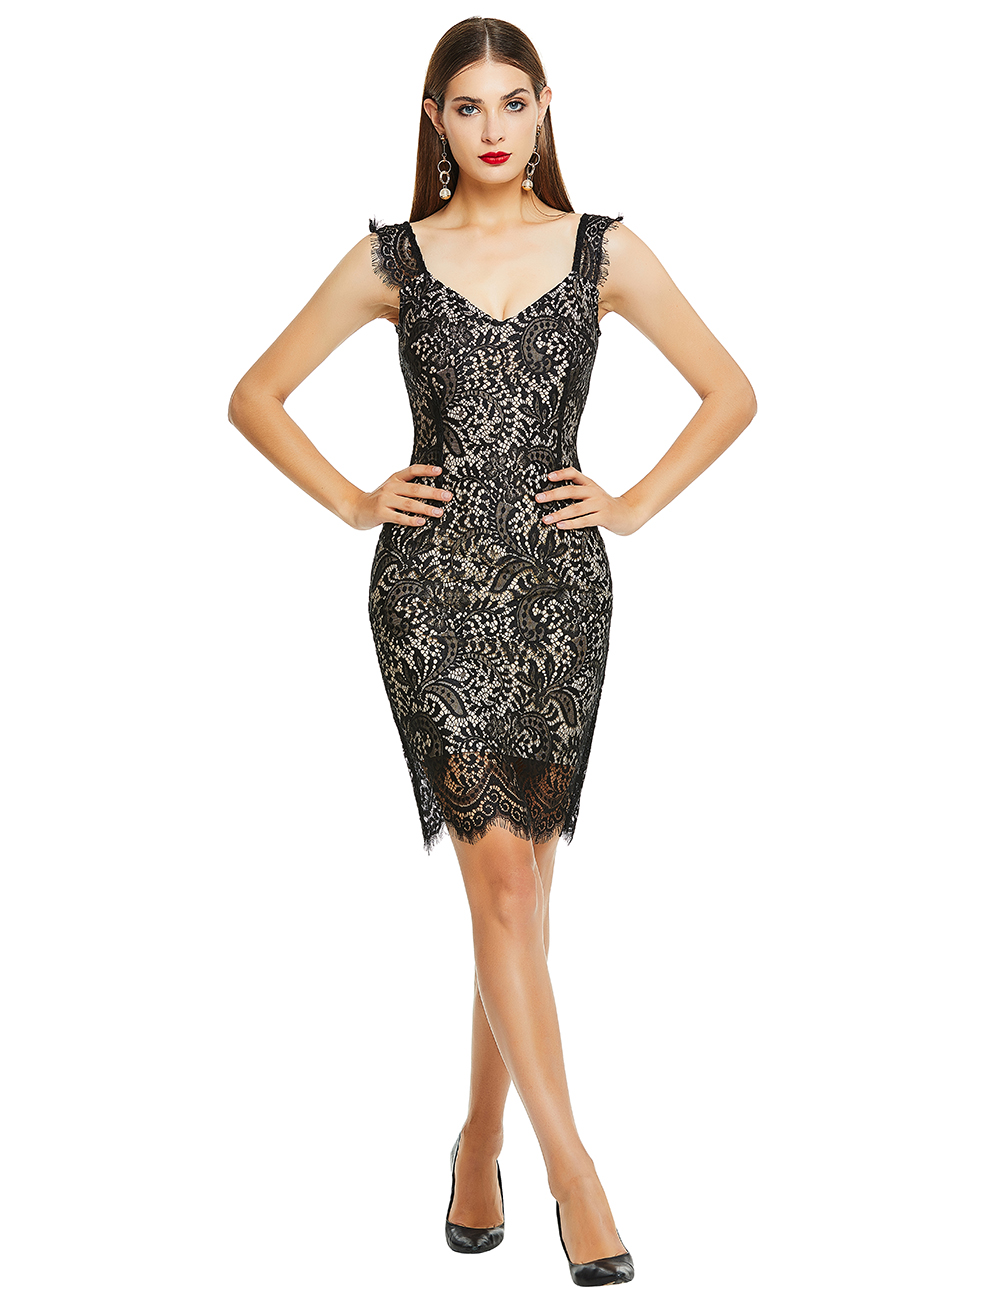 //cdn.affectcloud.com/hexinfashion/upload/imgs/Dress/Bandage_Dress/VZ191038-BK1/VZ191038-BK1-201911015dbbe2fc93781.jpg